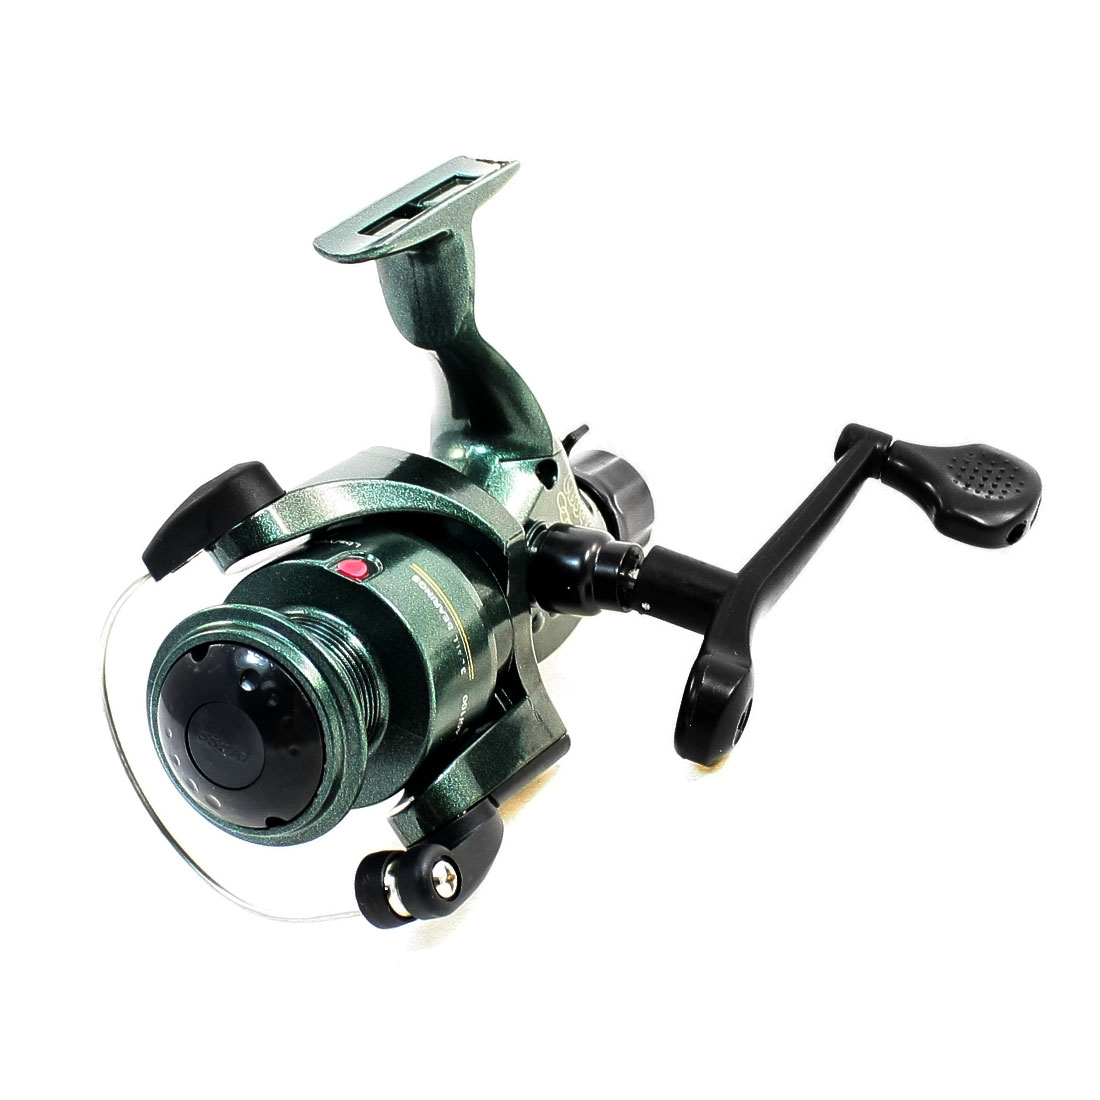 Gear Ratio 5.1:1 Fishing Spinning Bearing Reel Spool Olive Green